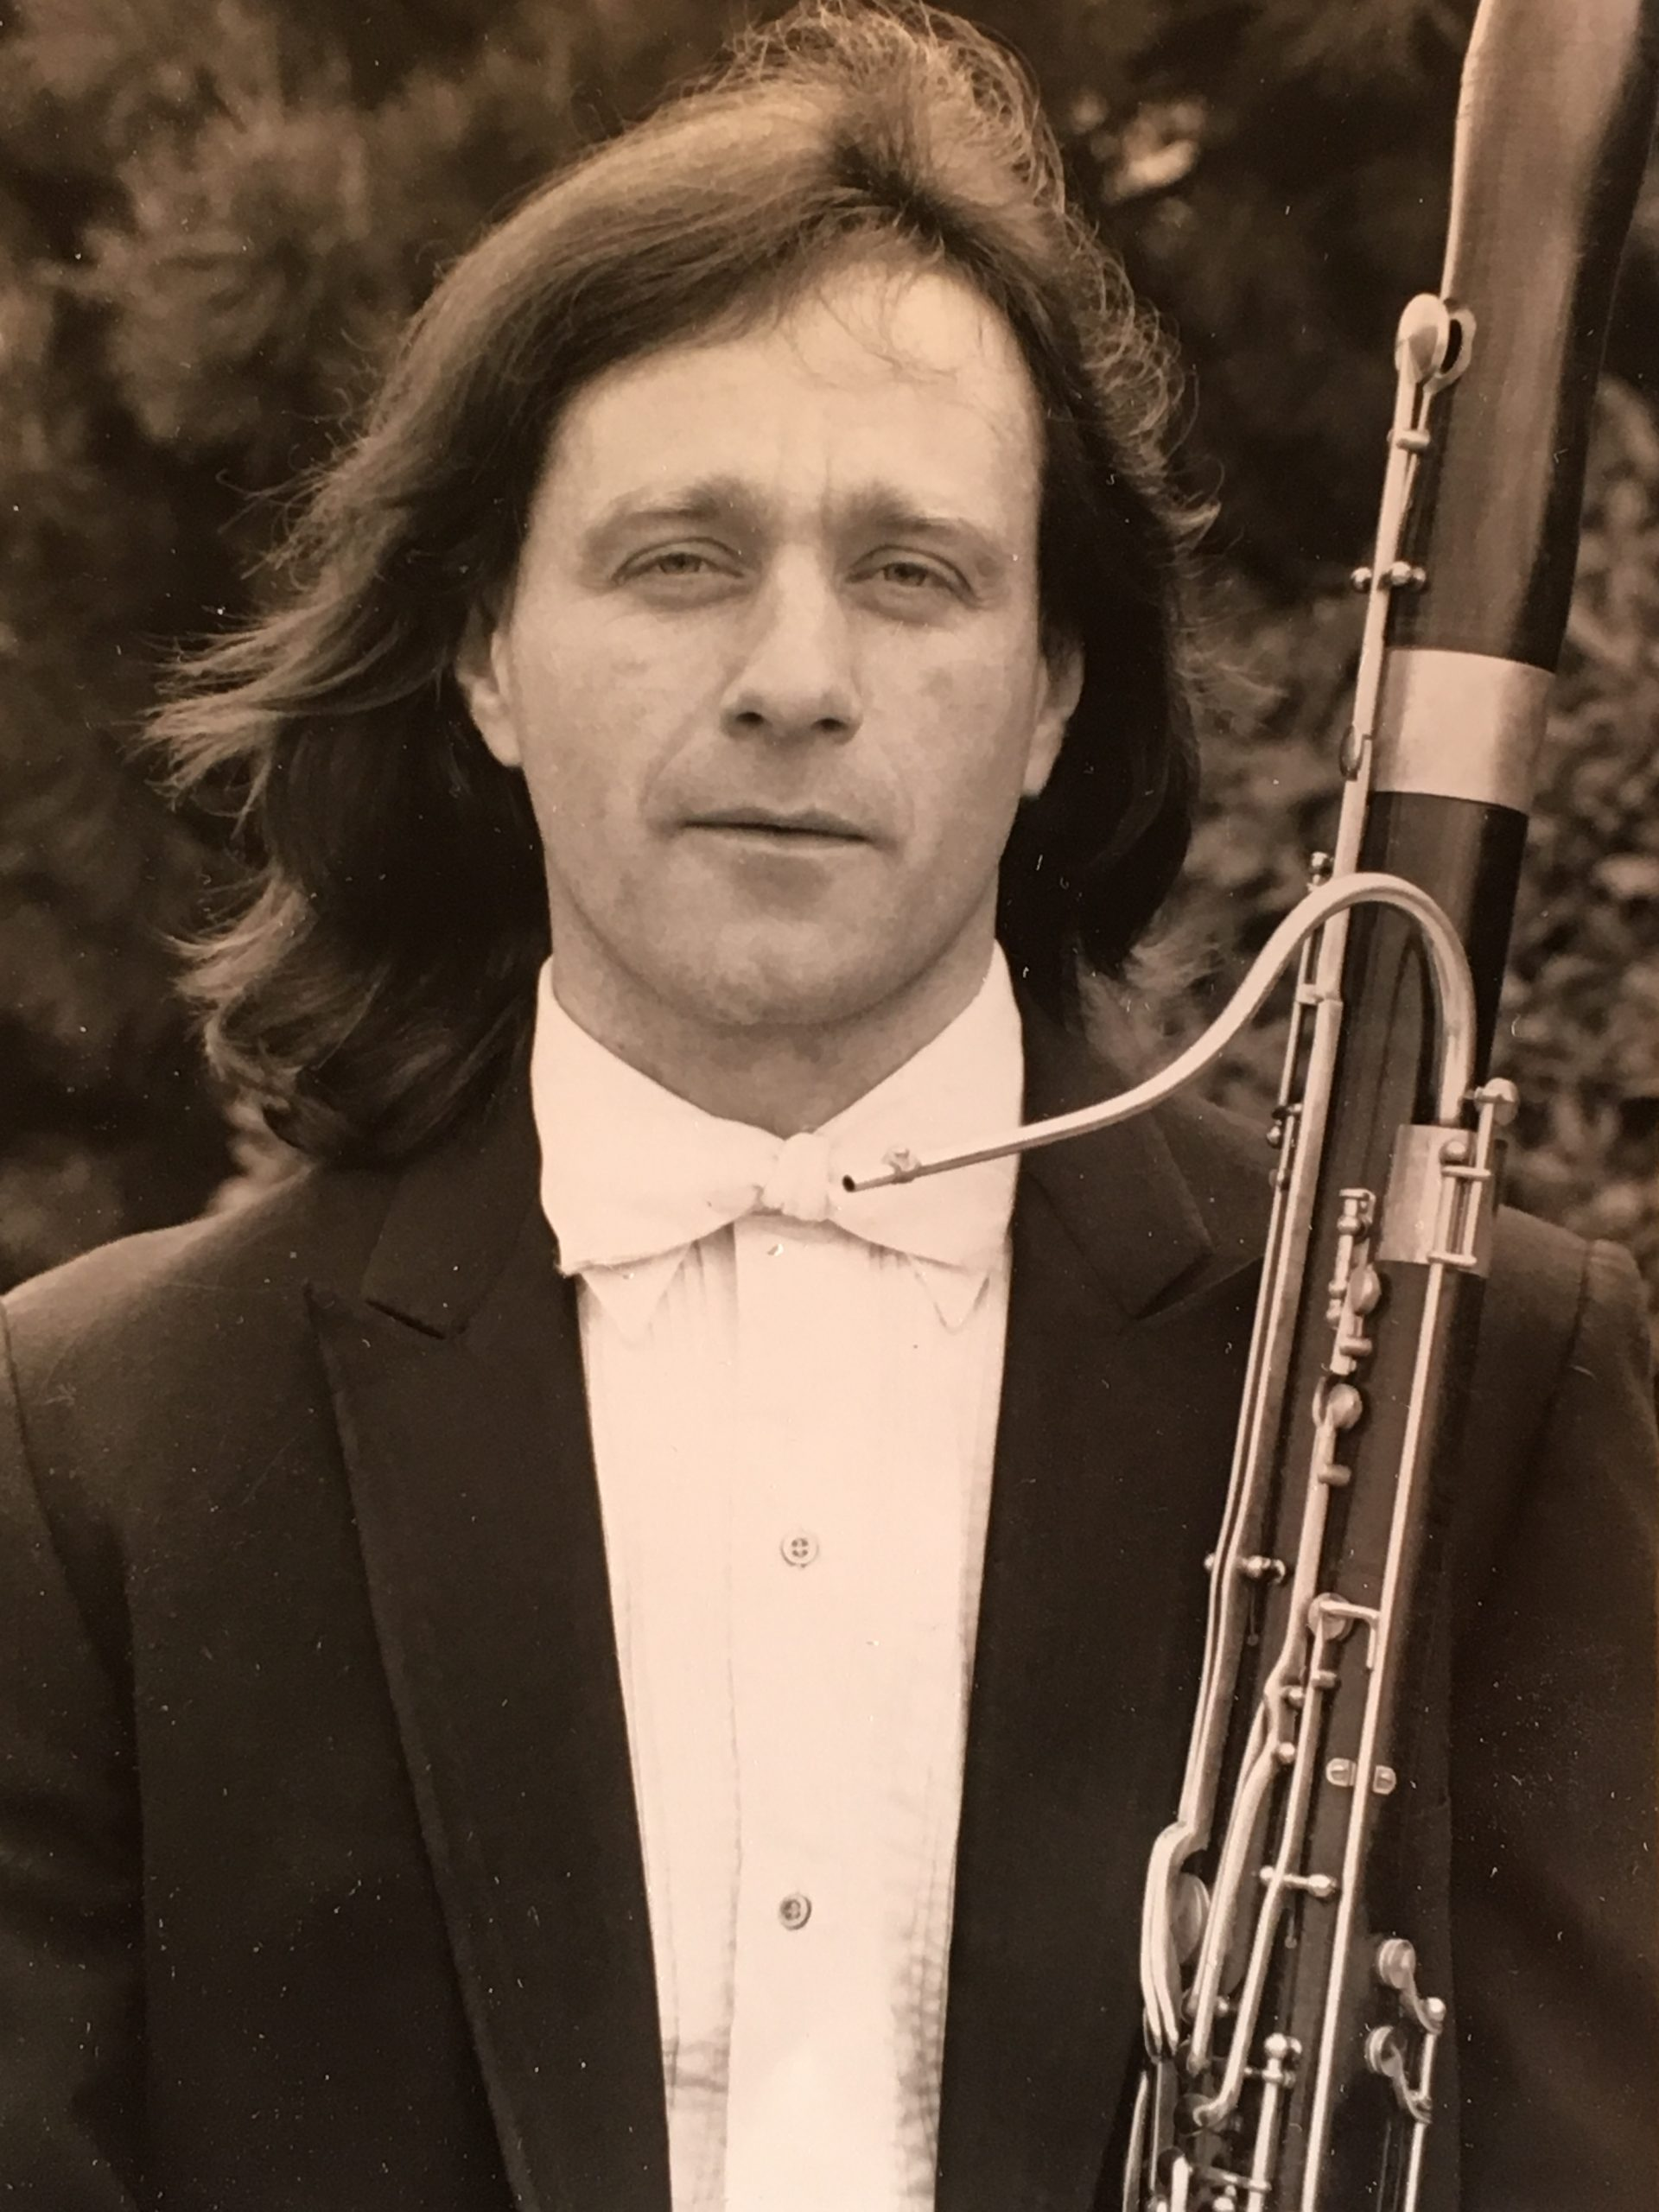 Paul Buttemer Bassoonist and Reed maker